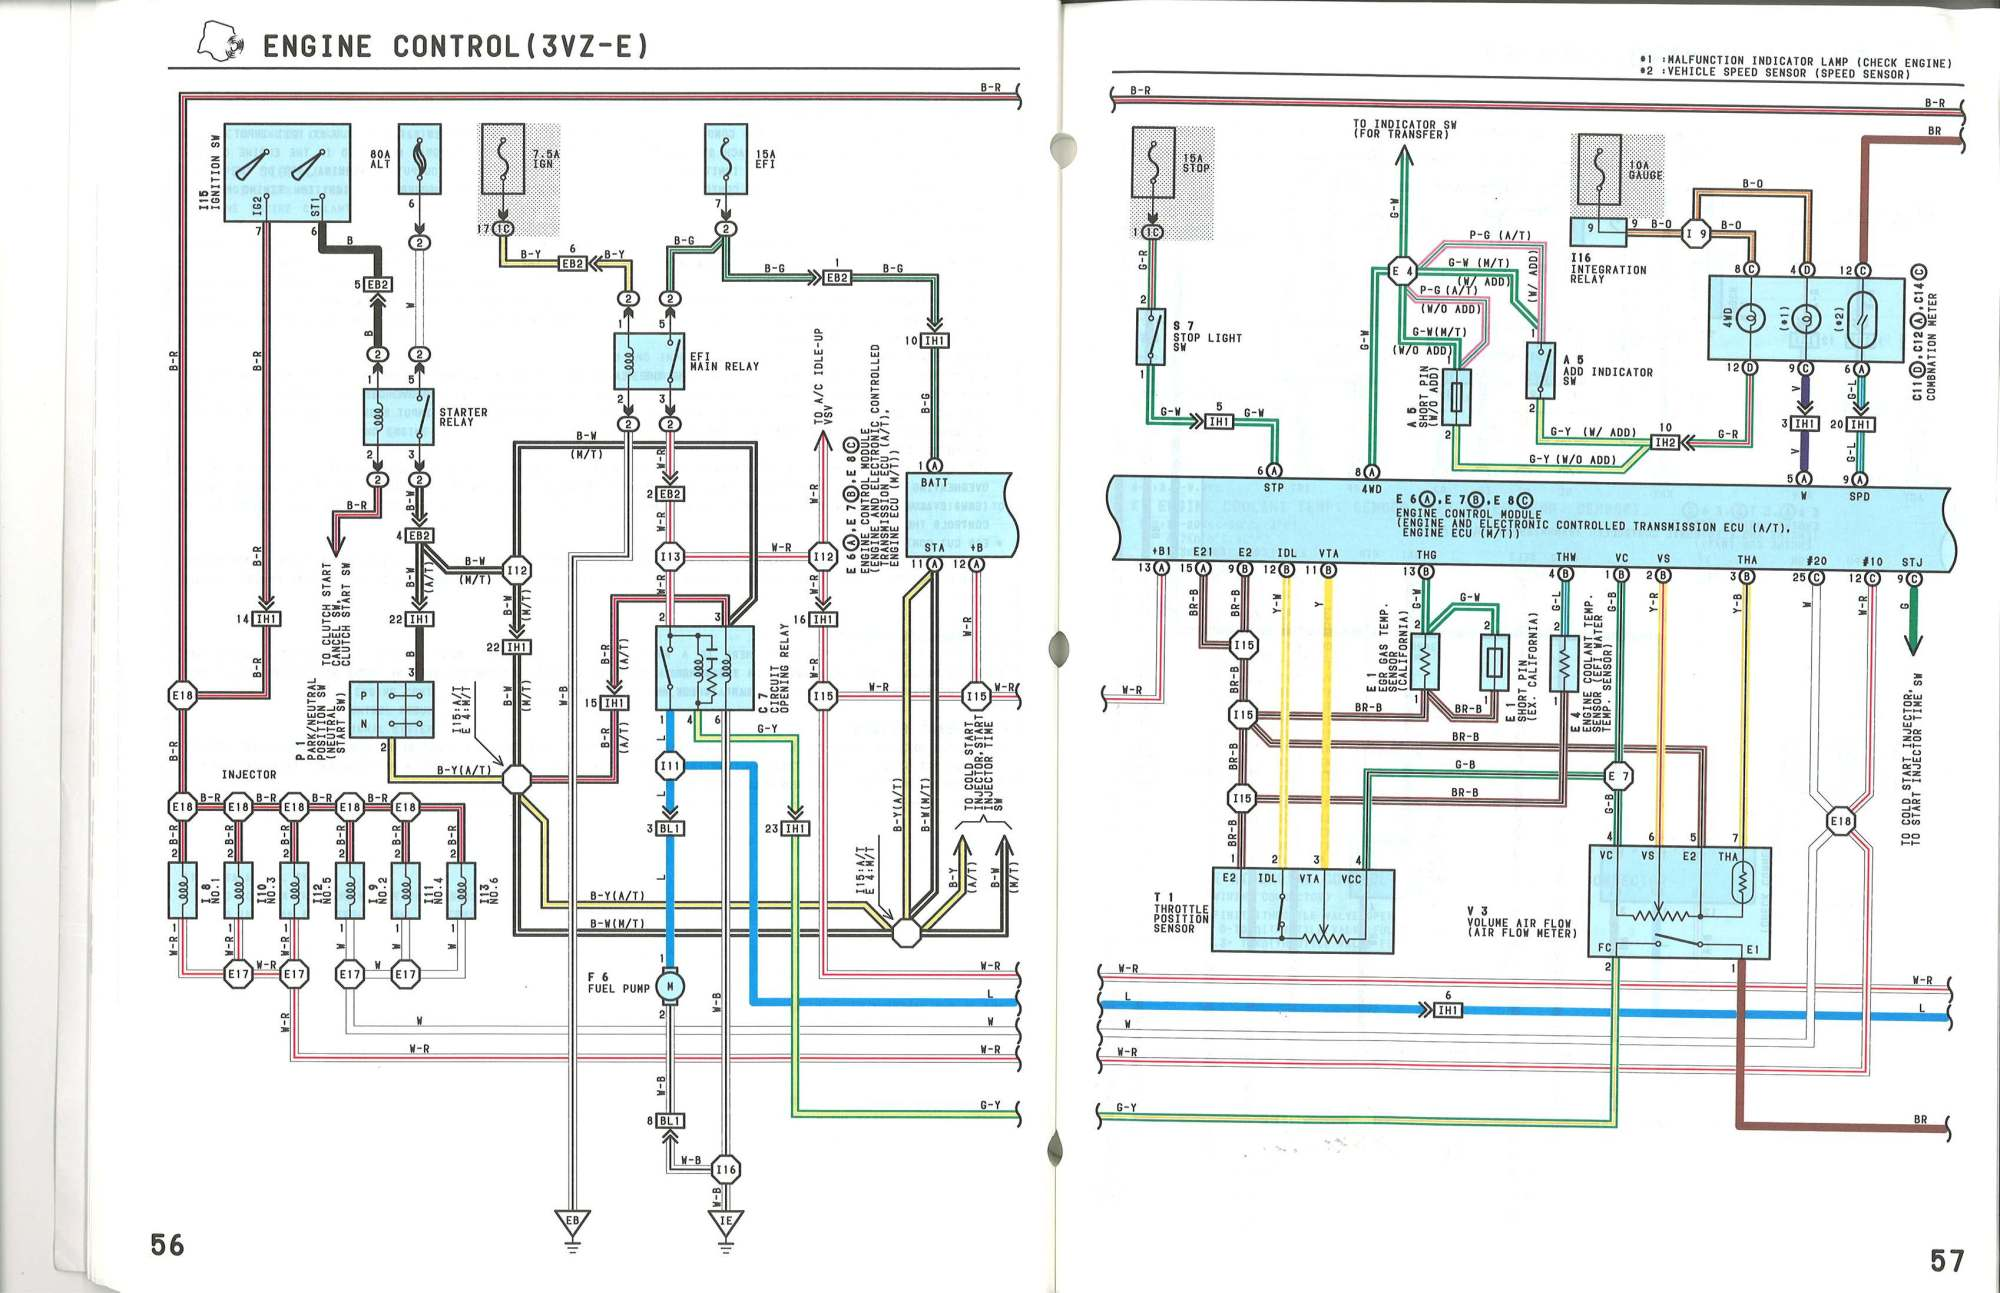 hight resolution of 1990 toyota pickup 3vze wiring diagram wiring diagram database 3vze ecu pinout yotatech forums 1990 toyota